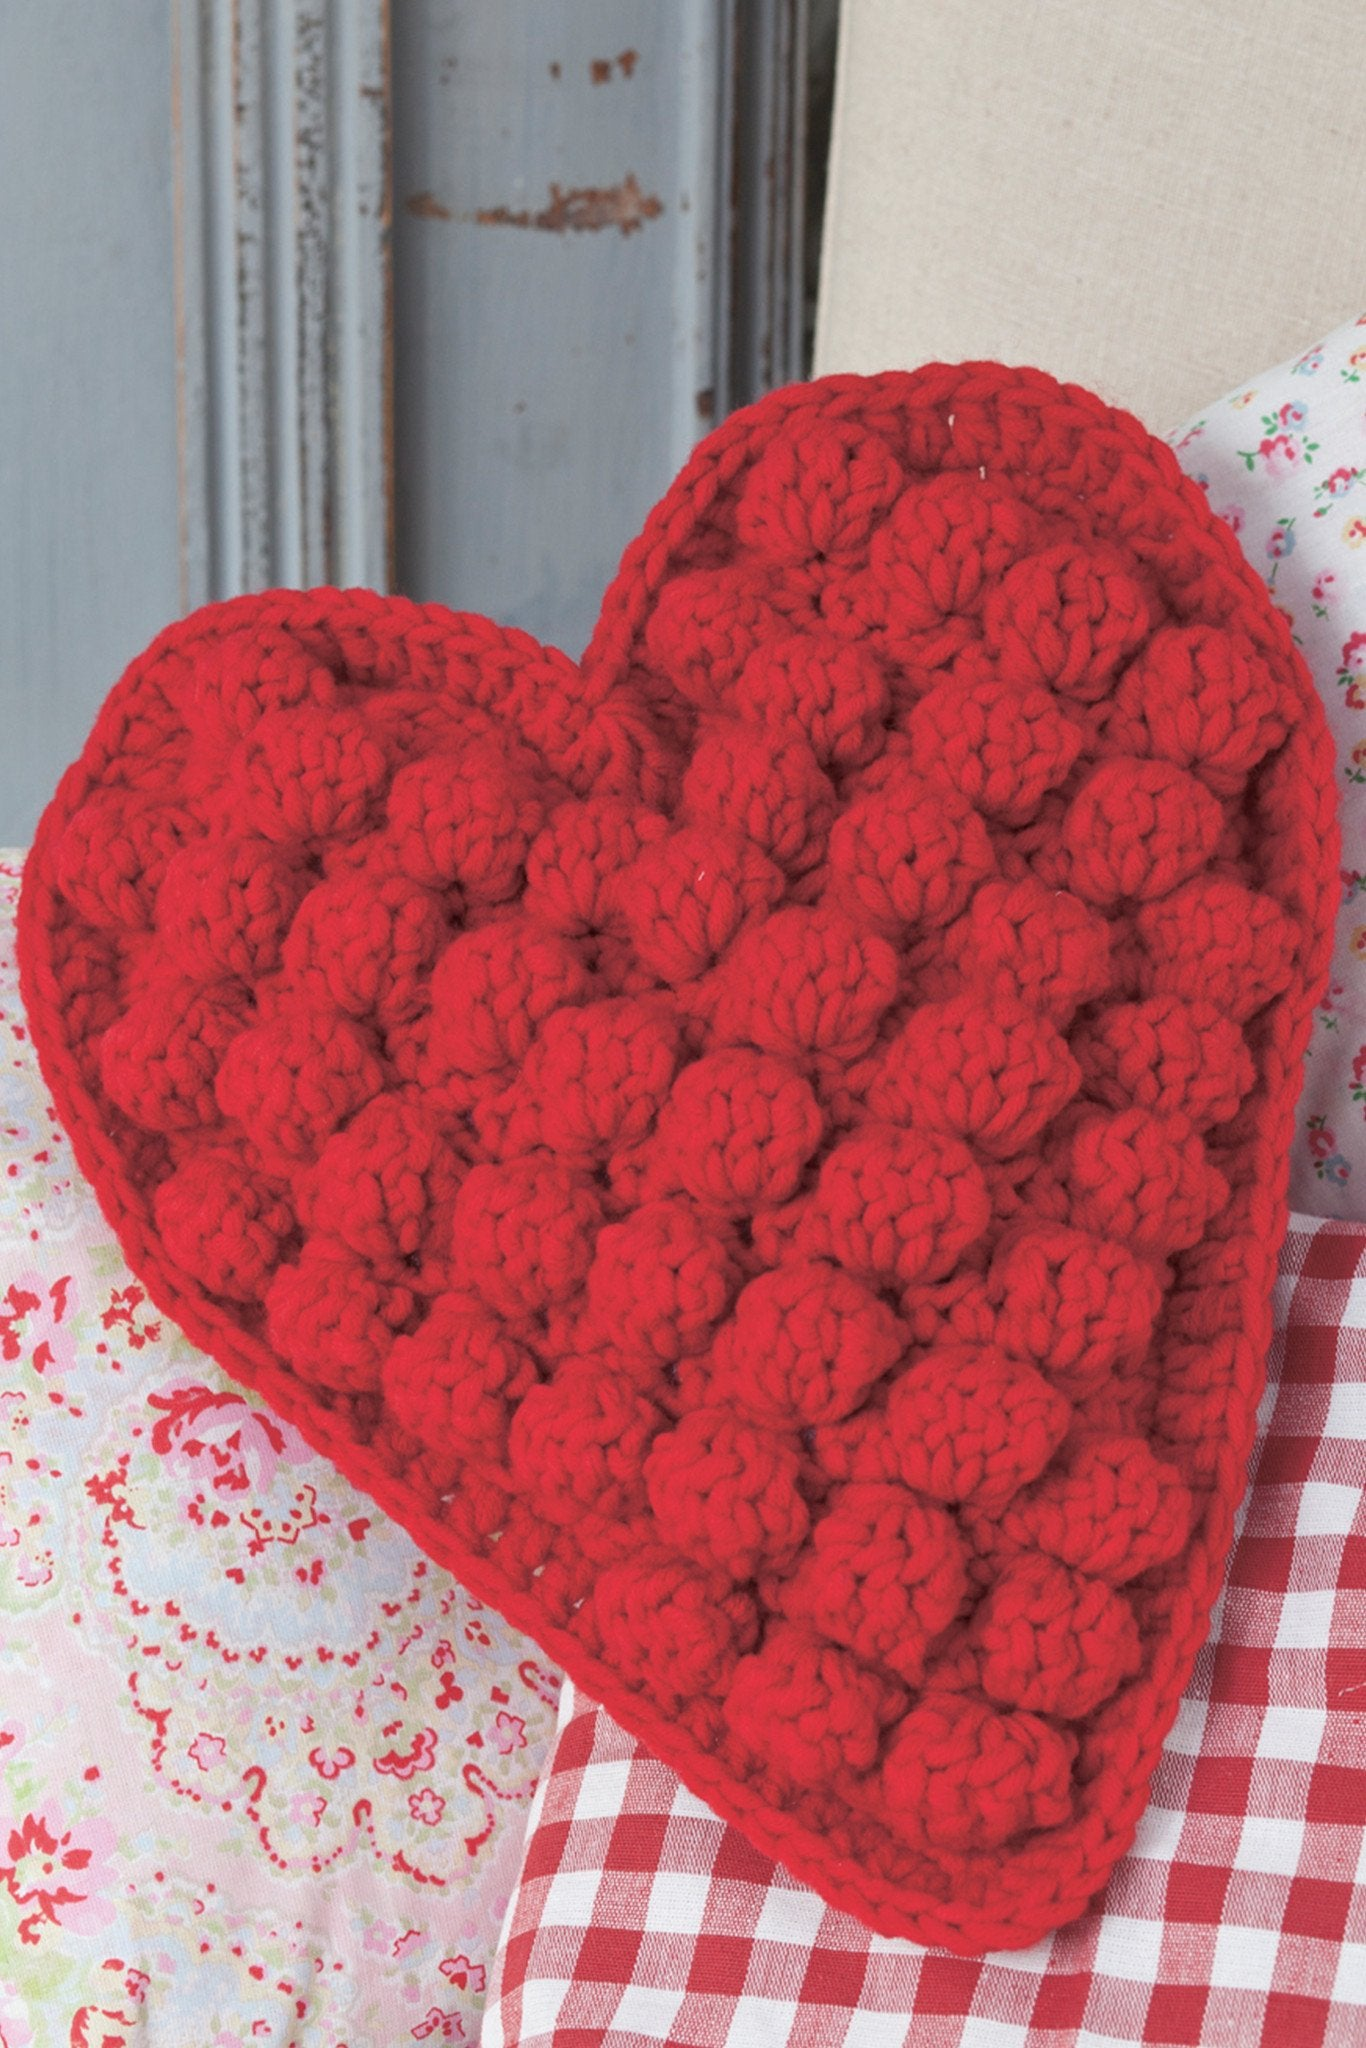 Heart Shaped Textured Cushion Crochet Pattern – The Knitting Network